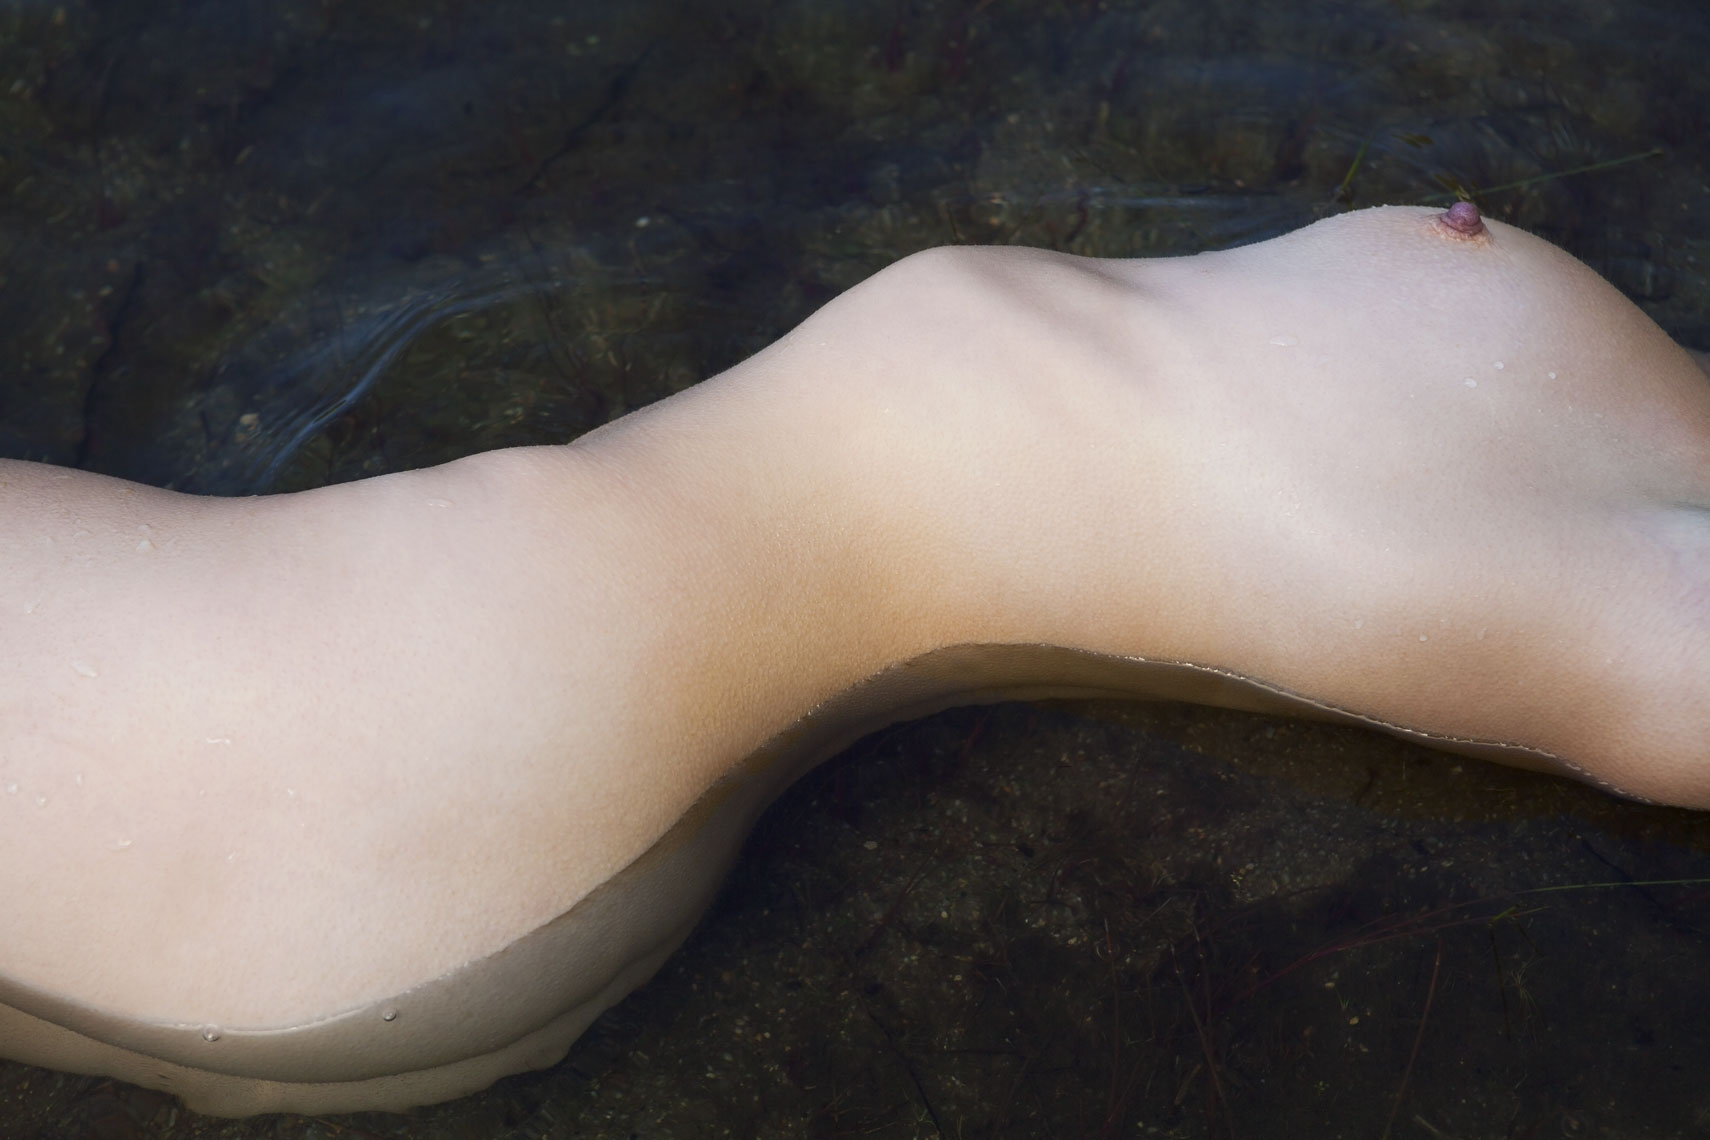 Torso of naked woman in water, side view.